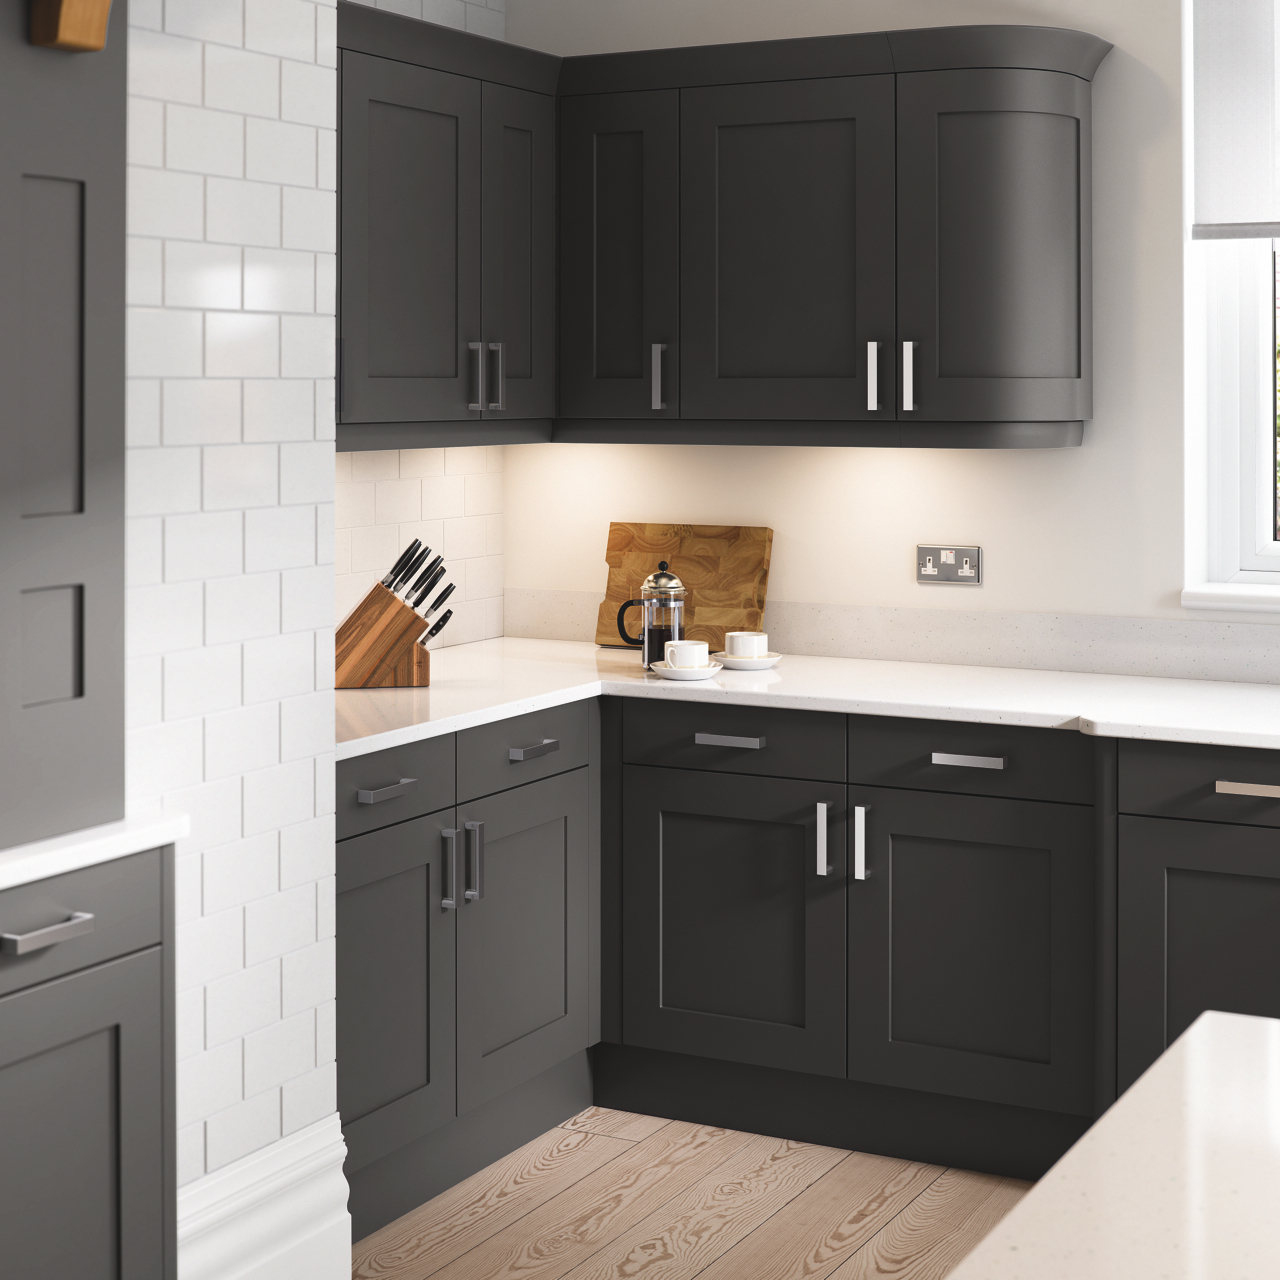 Oxford Anthracite Kitchen Doors Doors And Handles Uk